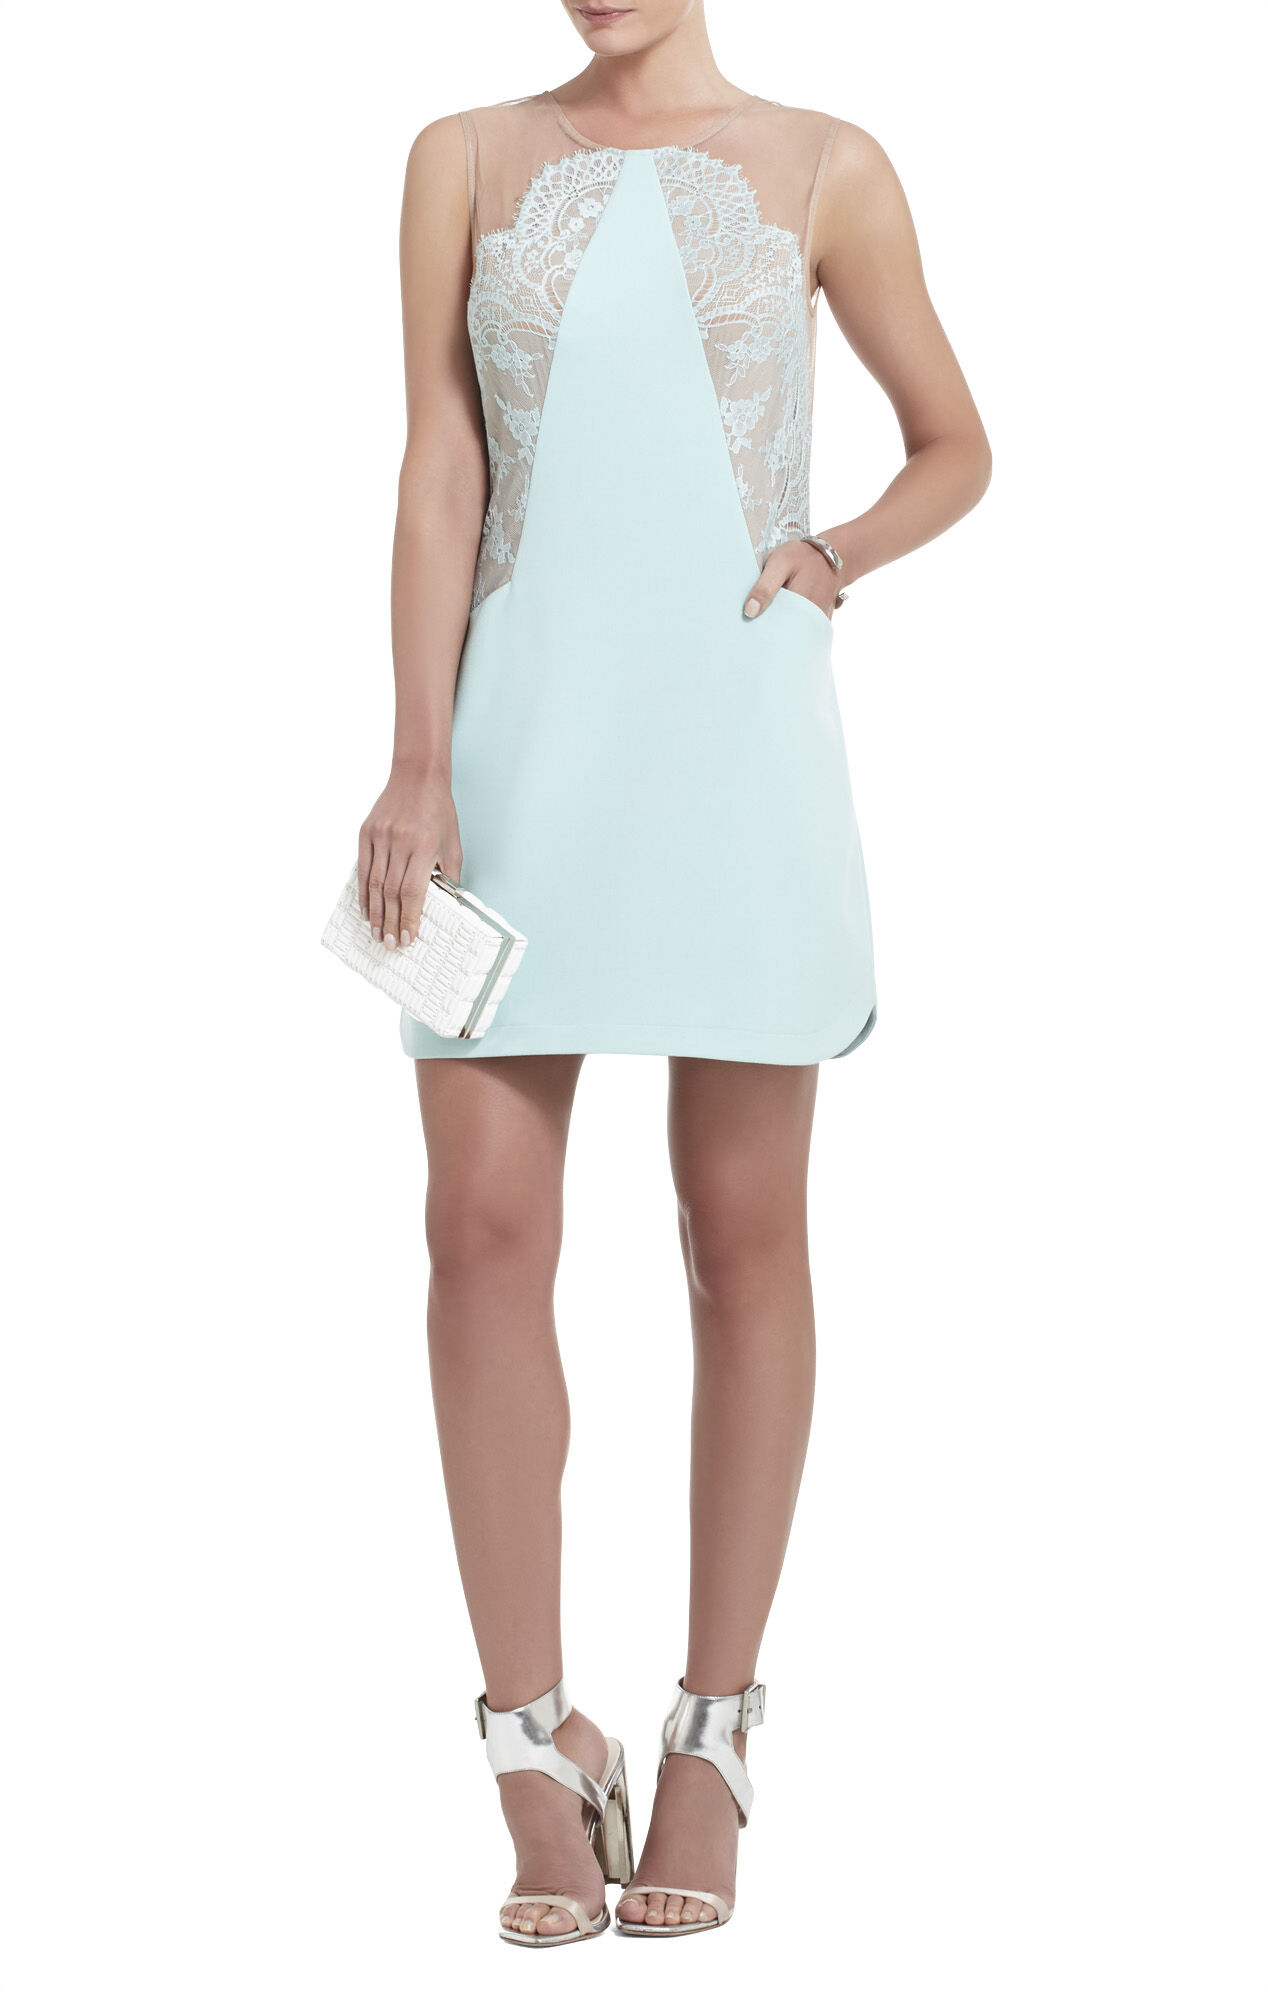 Avrey Sleeveless Lace-Blocked Dress